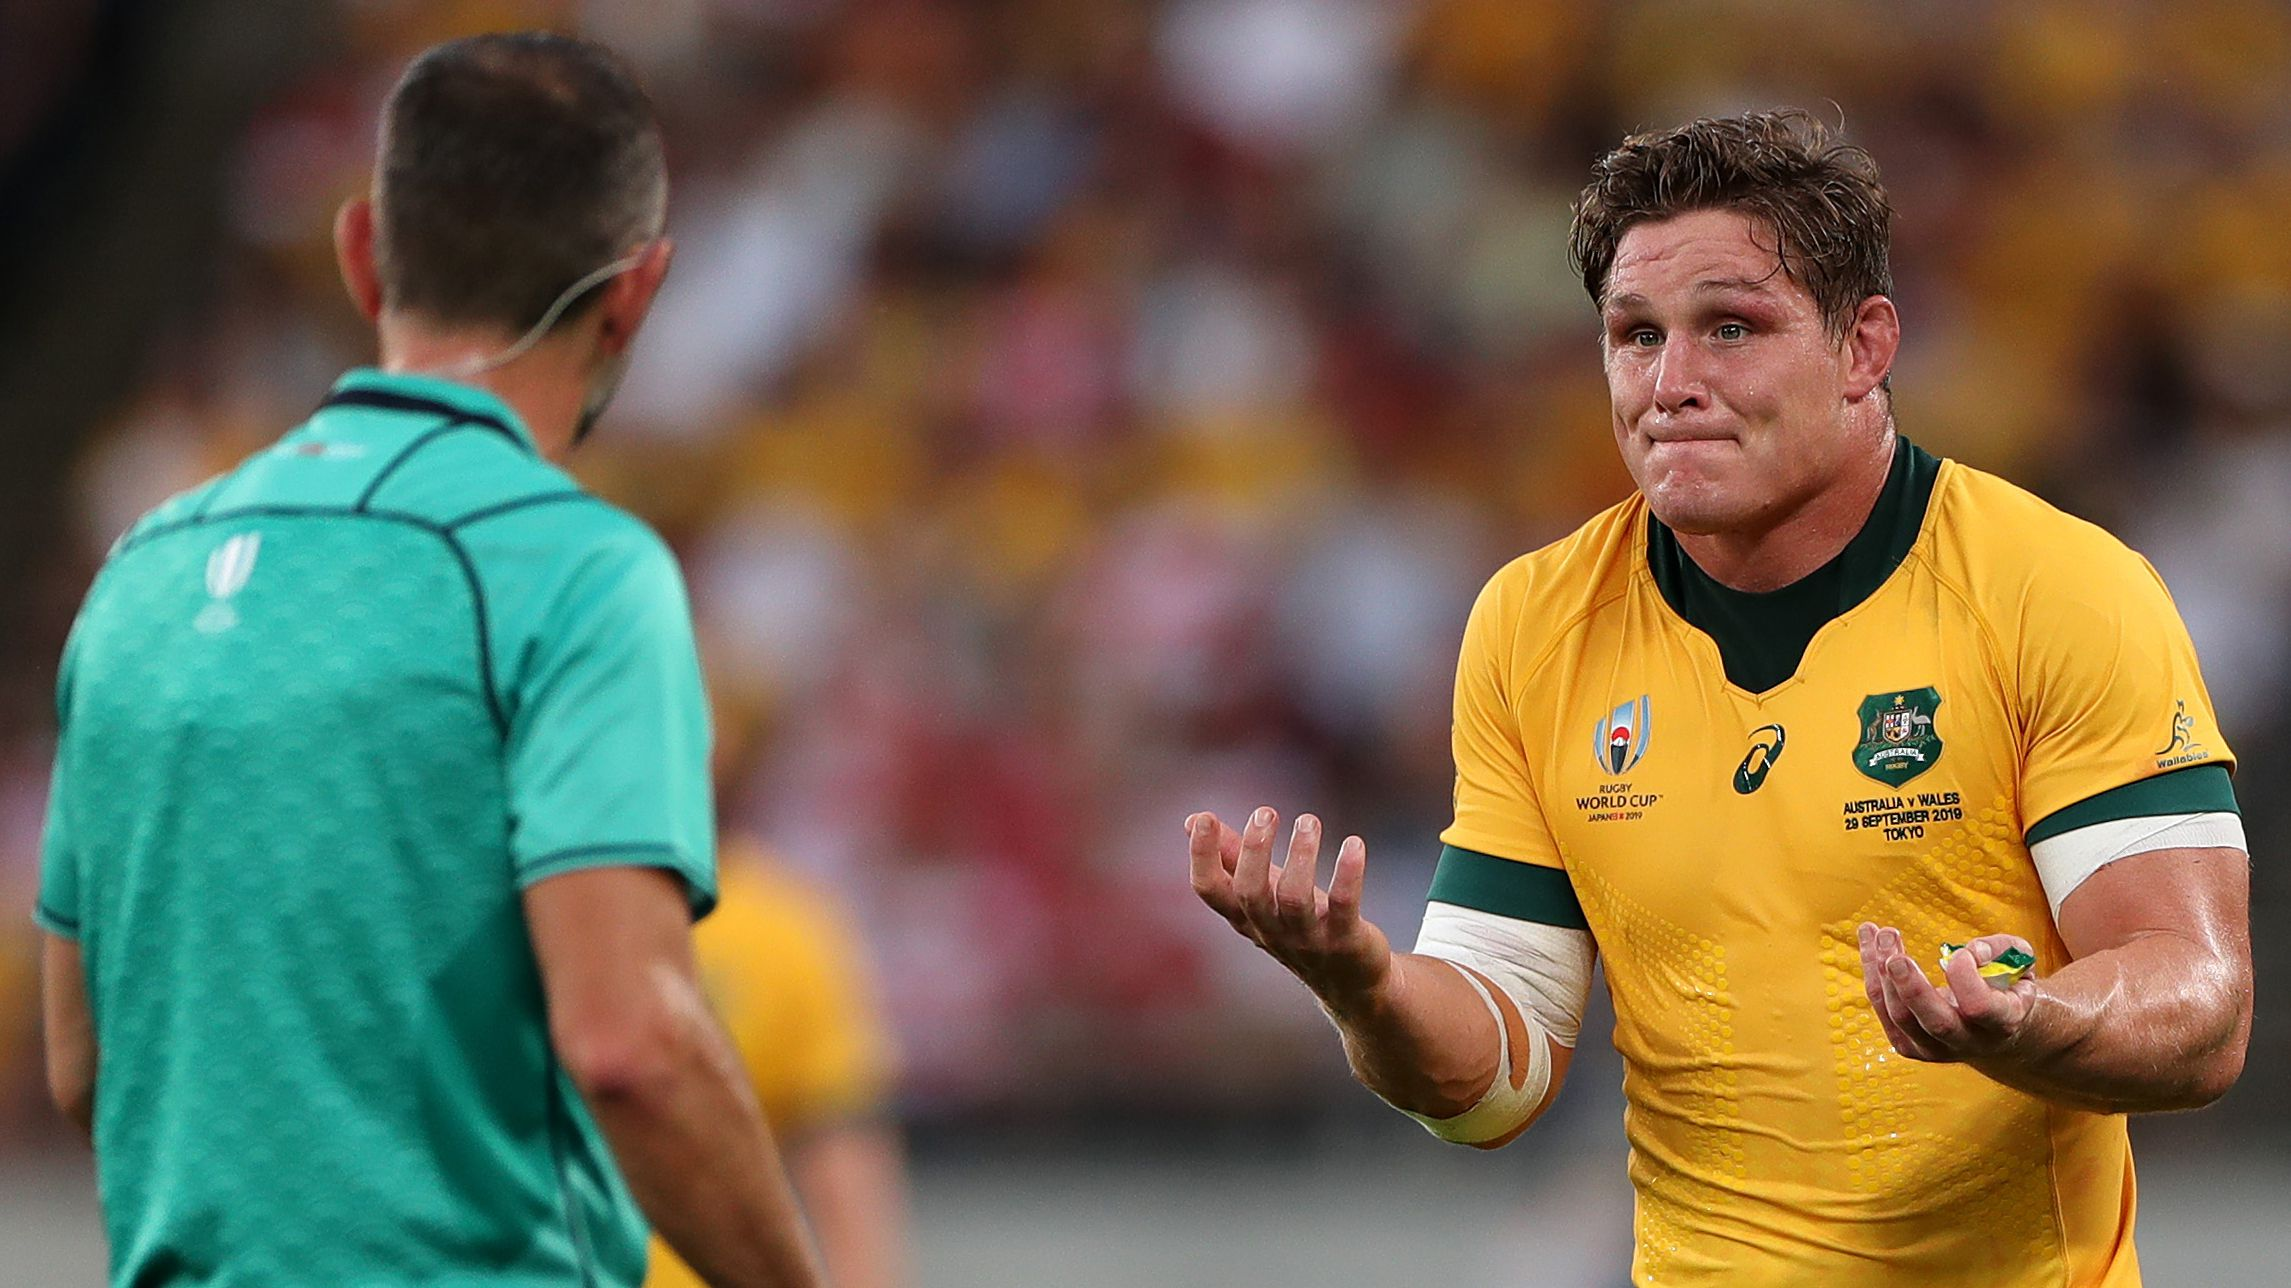 Rugby World Cup: Refs aren't distracting Wallabies says skipper Michael Hooper